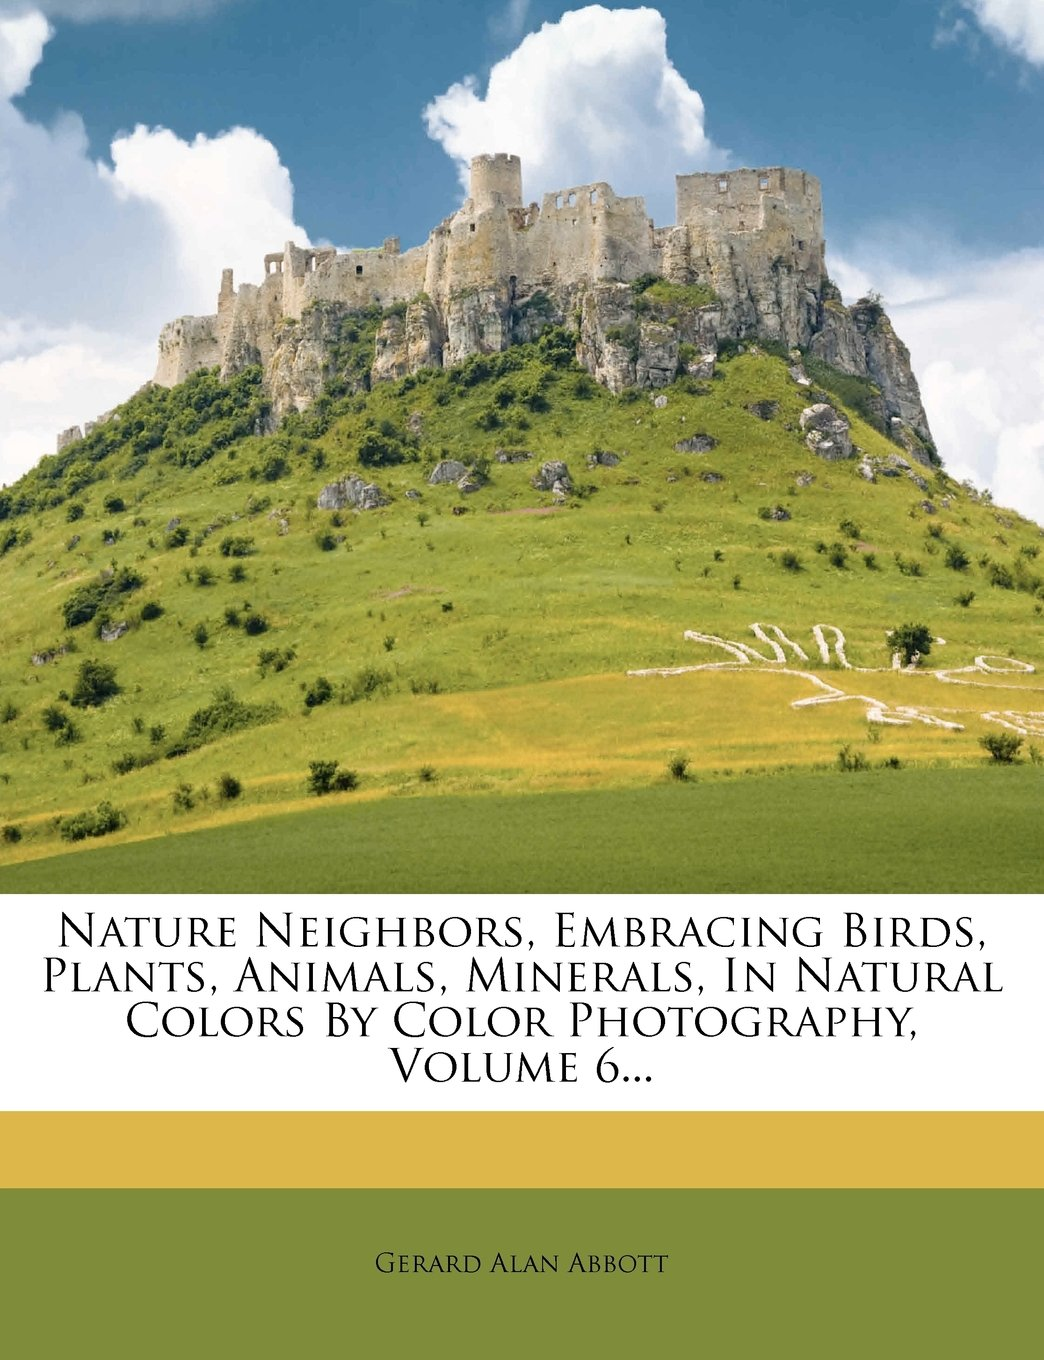 Nature Neighbors, Embracing Birds, Plants, Animals, Minerals, In Natural Colors By Color Photography, Volume 6...